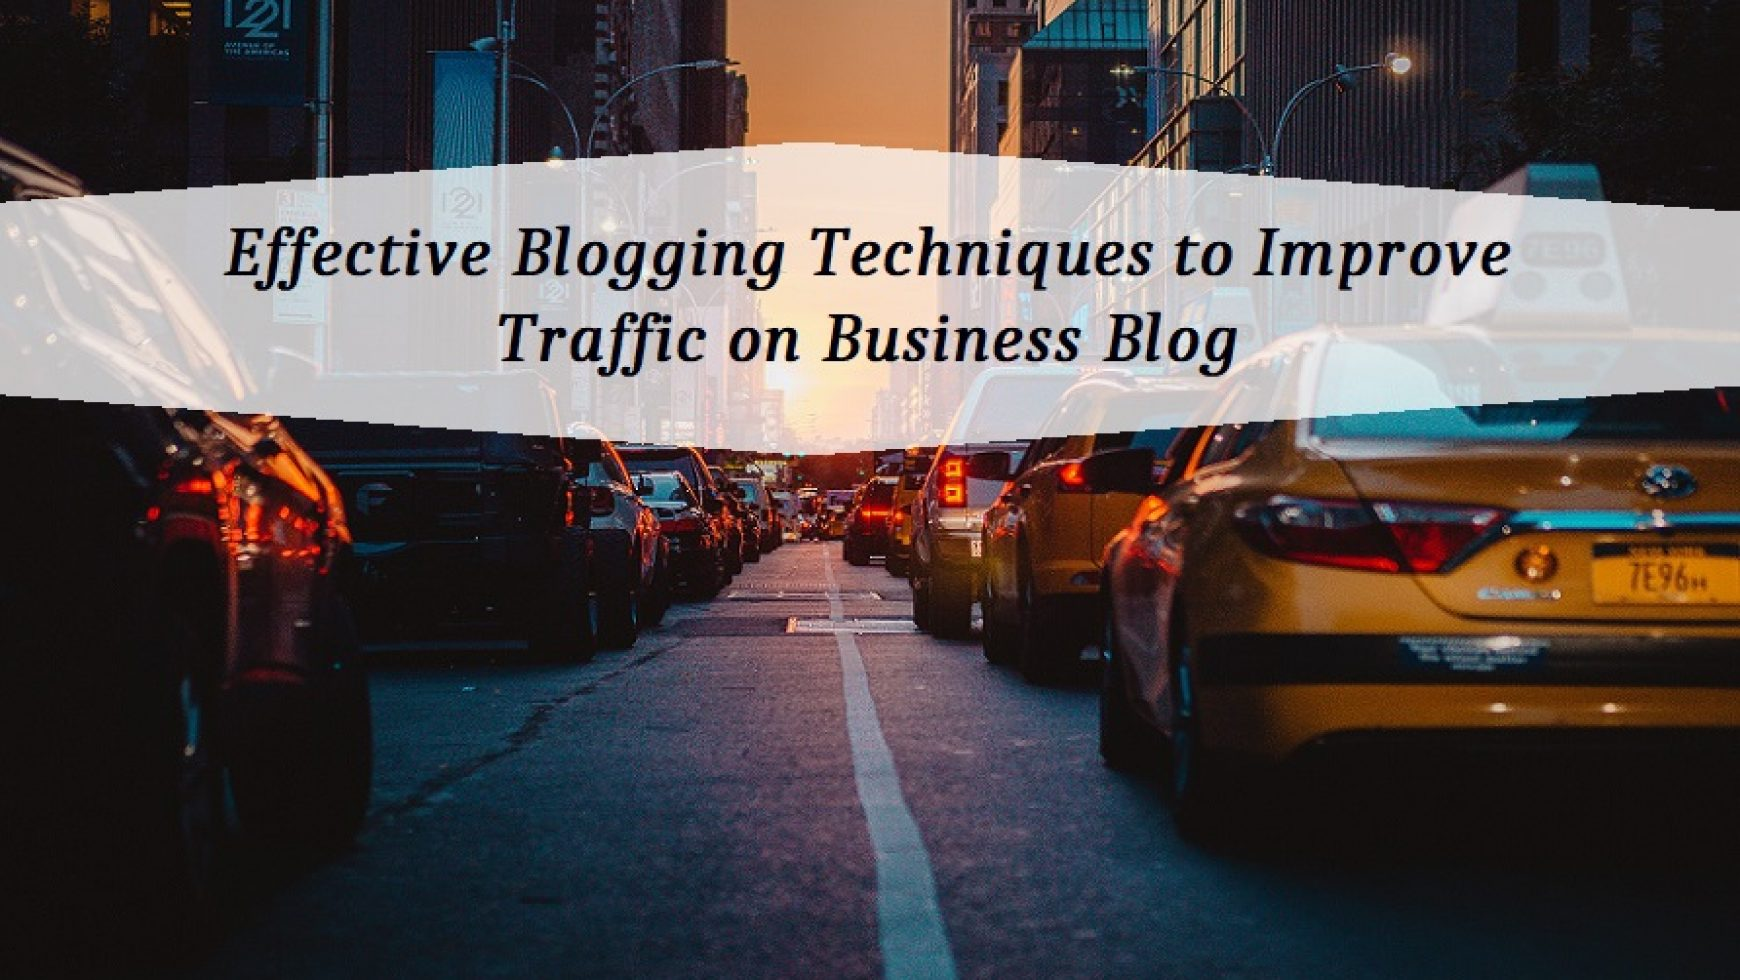 Effective Blogging Techniques to Improve Traffic on Business Blog